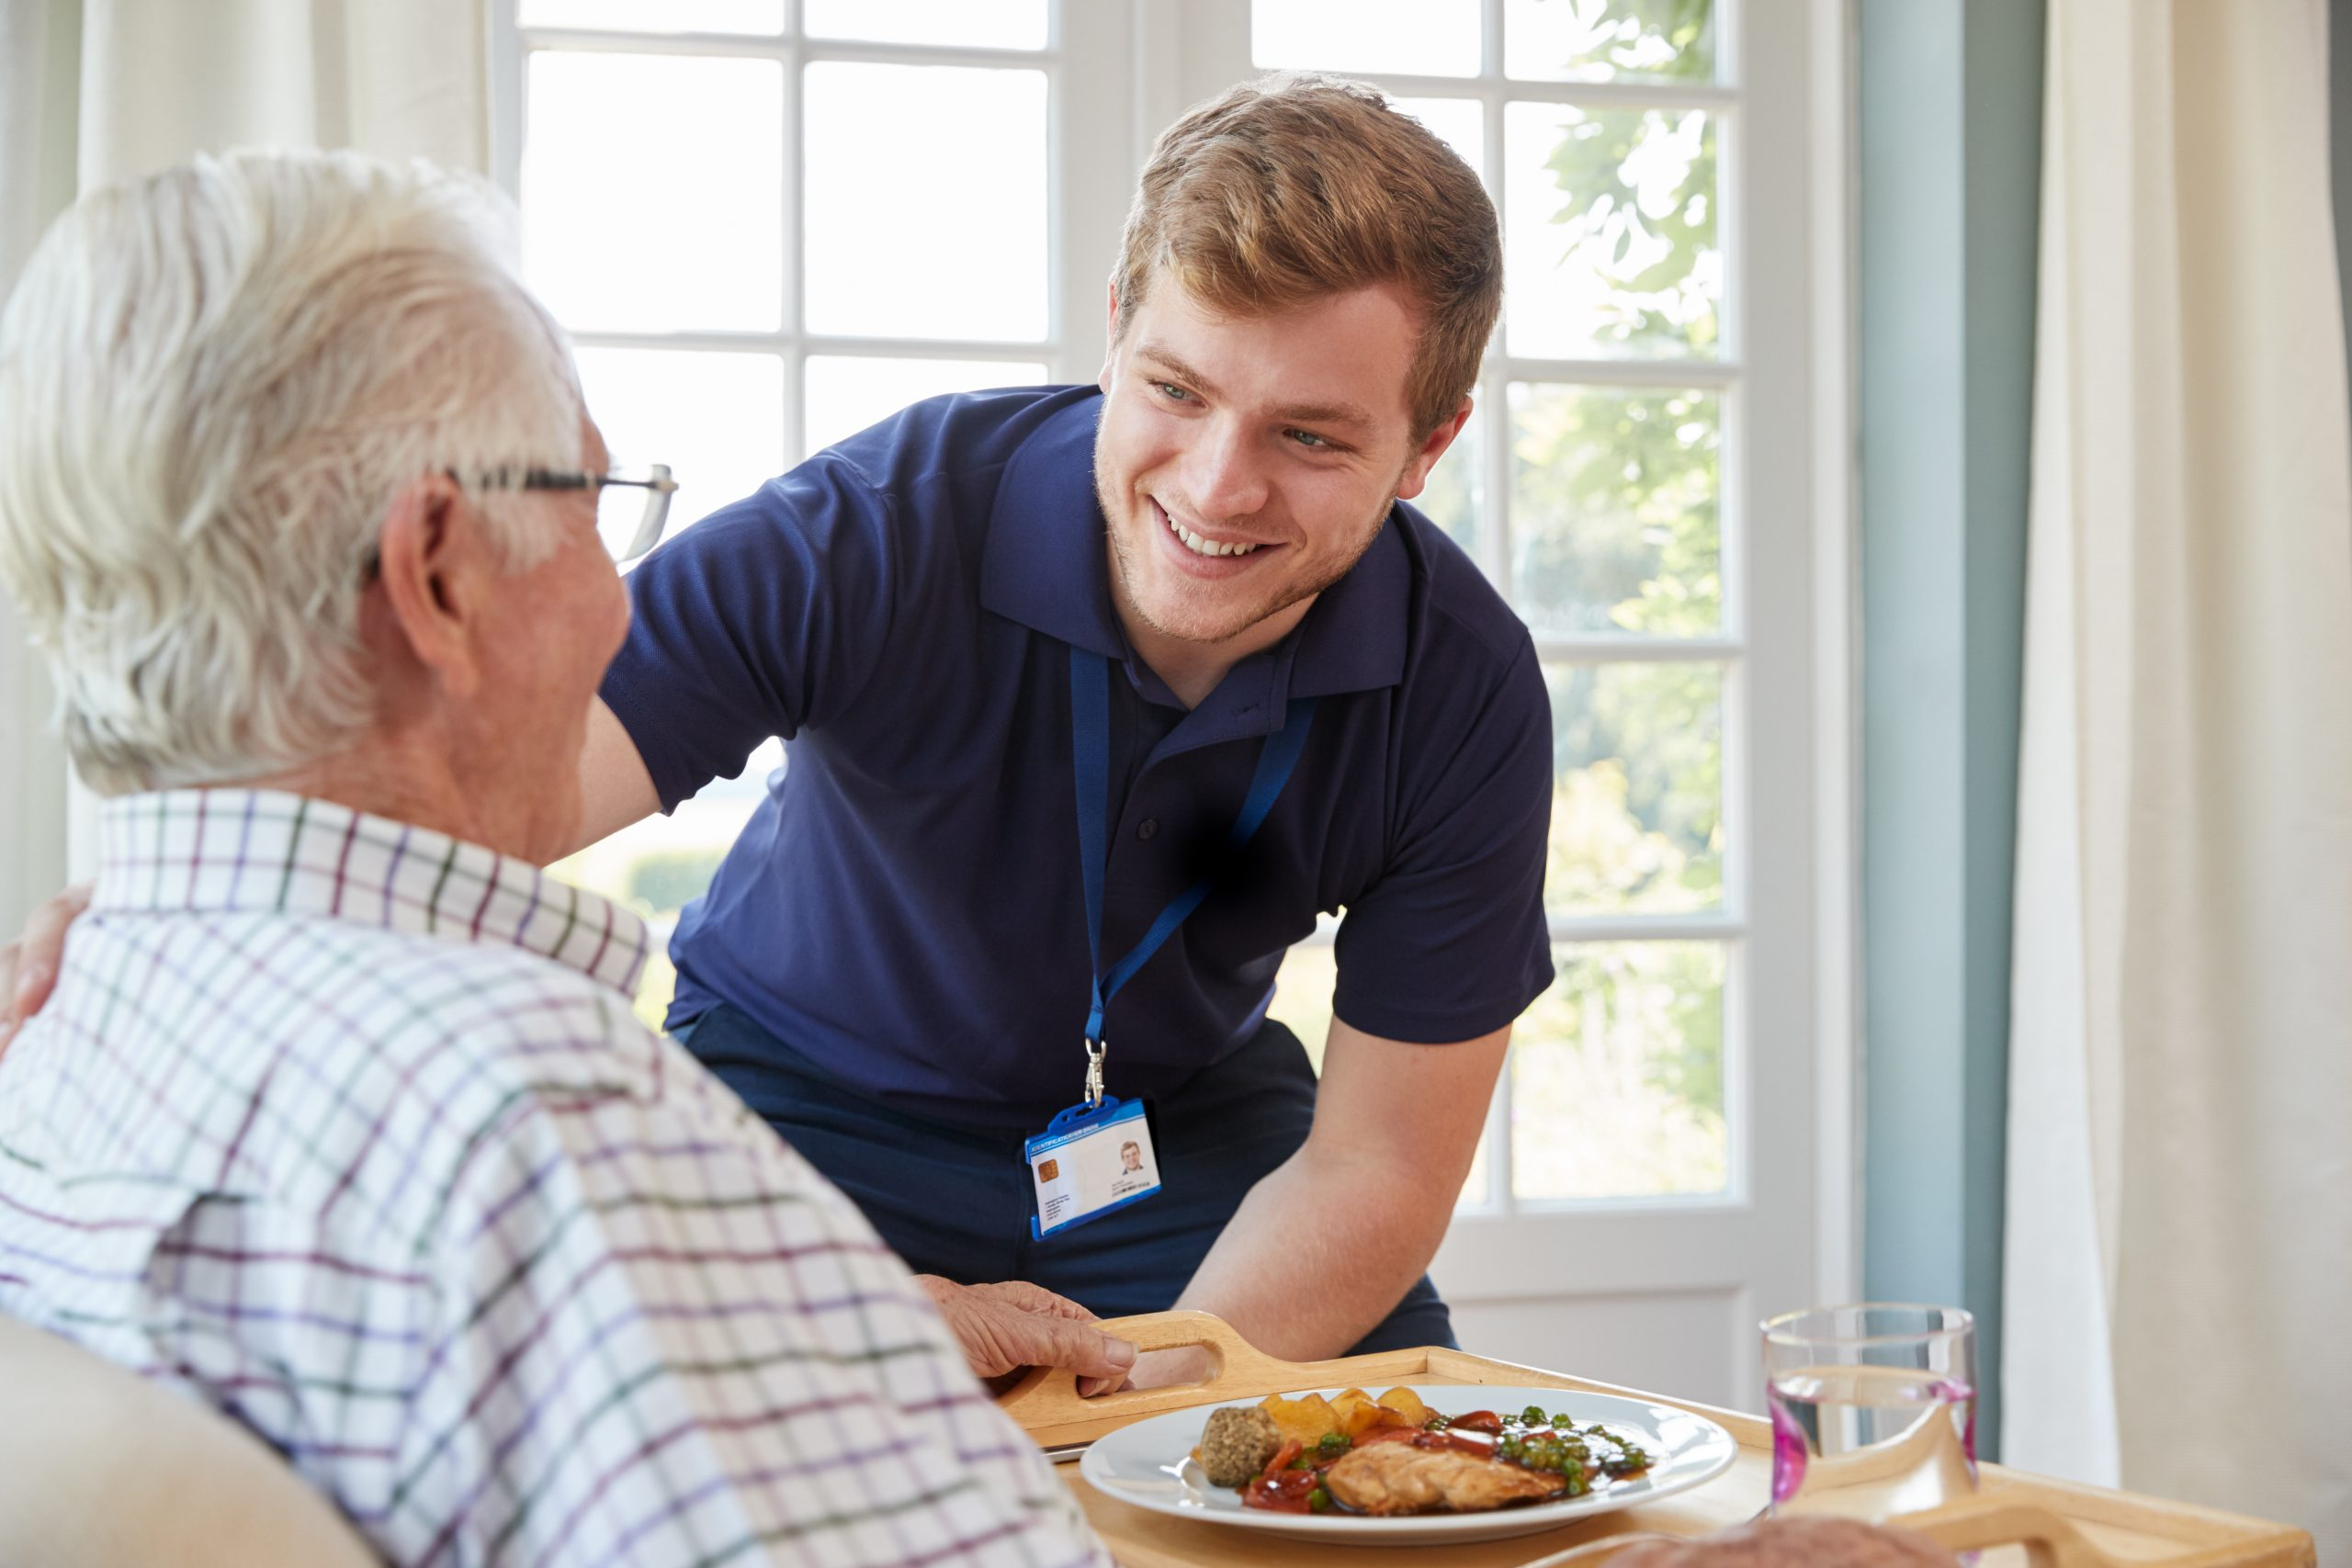 Young man helping older man with dinner